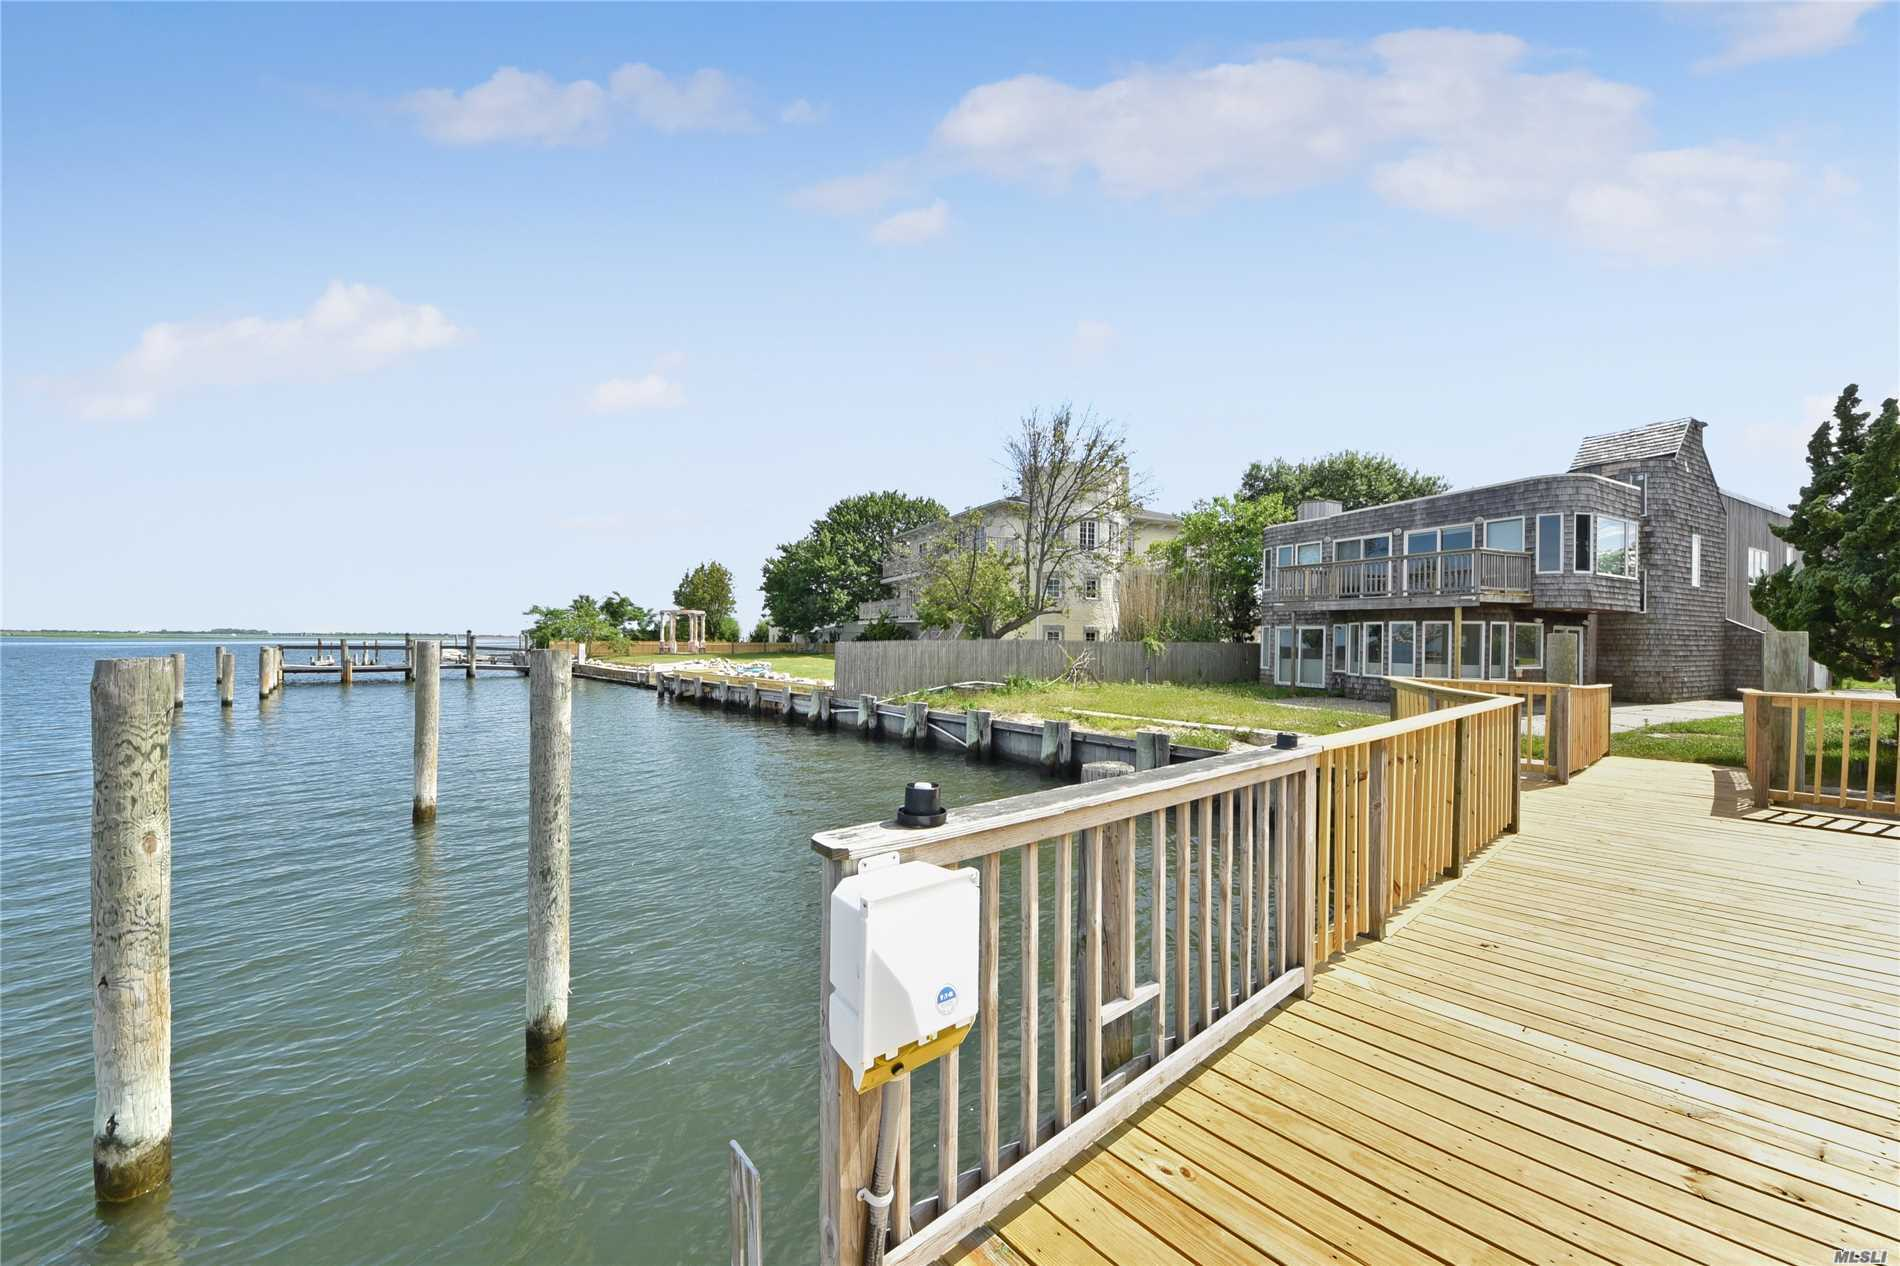 Baldwin. Boaters Dream House!! Amazing 5 Bedroom, 4 Bath House, Waterfront With Magnificent Water Views, Private Floating Dock, Lots Of Amenities, Updated With New Kitchen, New Appliances, Huge Bedrooms, High Ceilings.